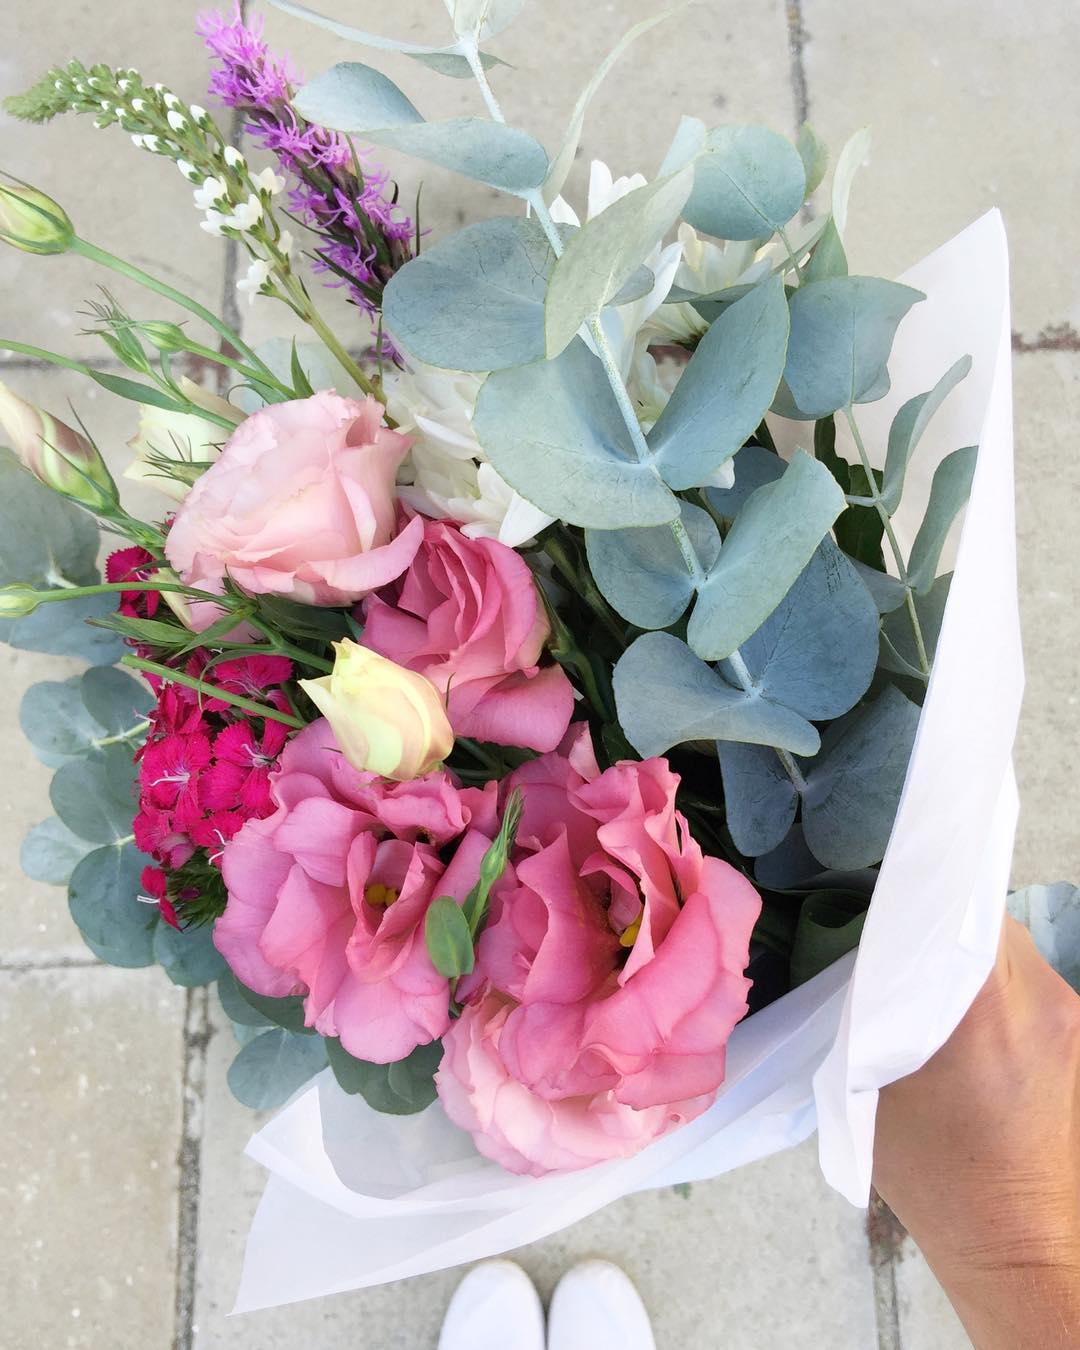 Posy perfection. Today Posy is lisianthus with sweet William, liatrus, sprays and penny gum. Order online before 12:30pm for delivery today.